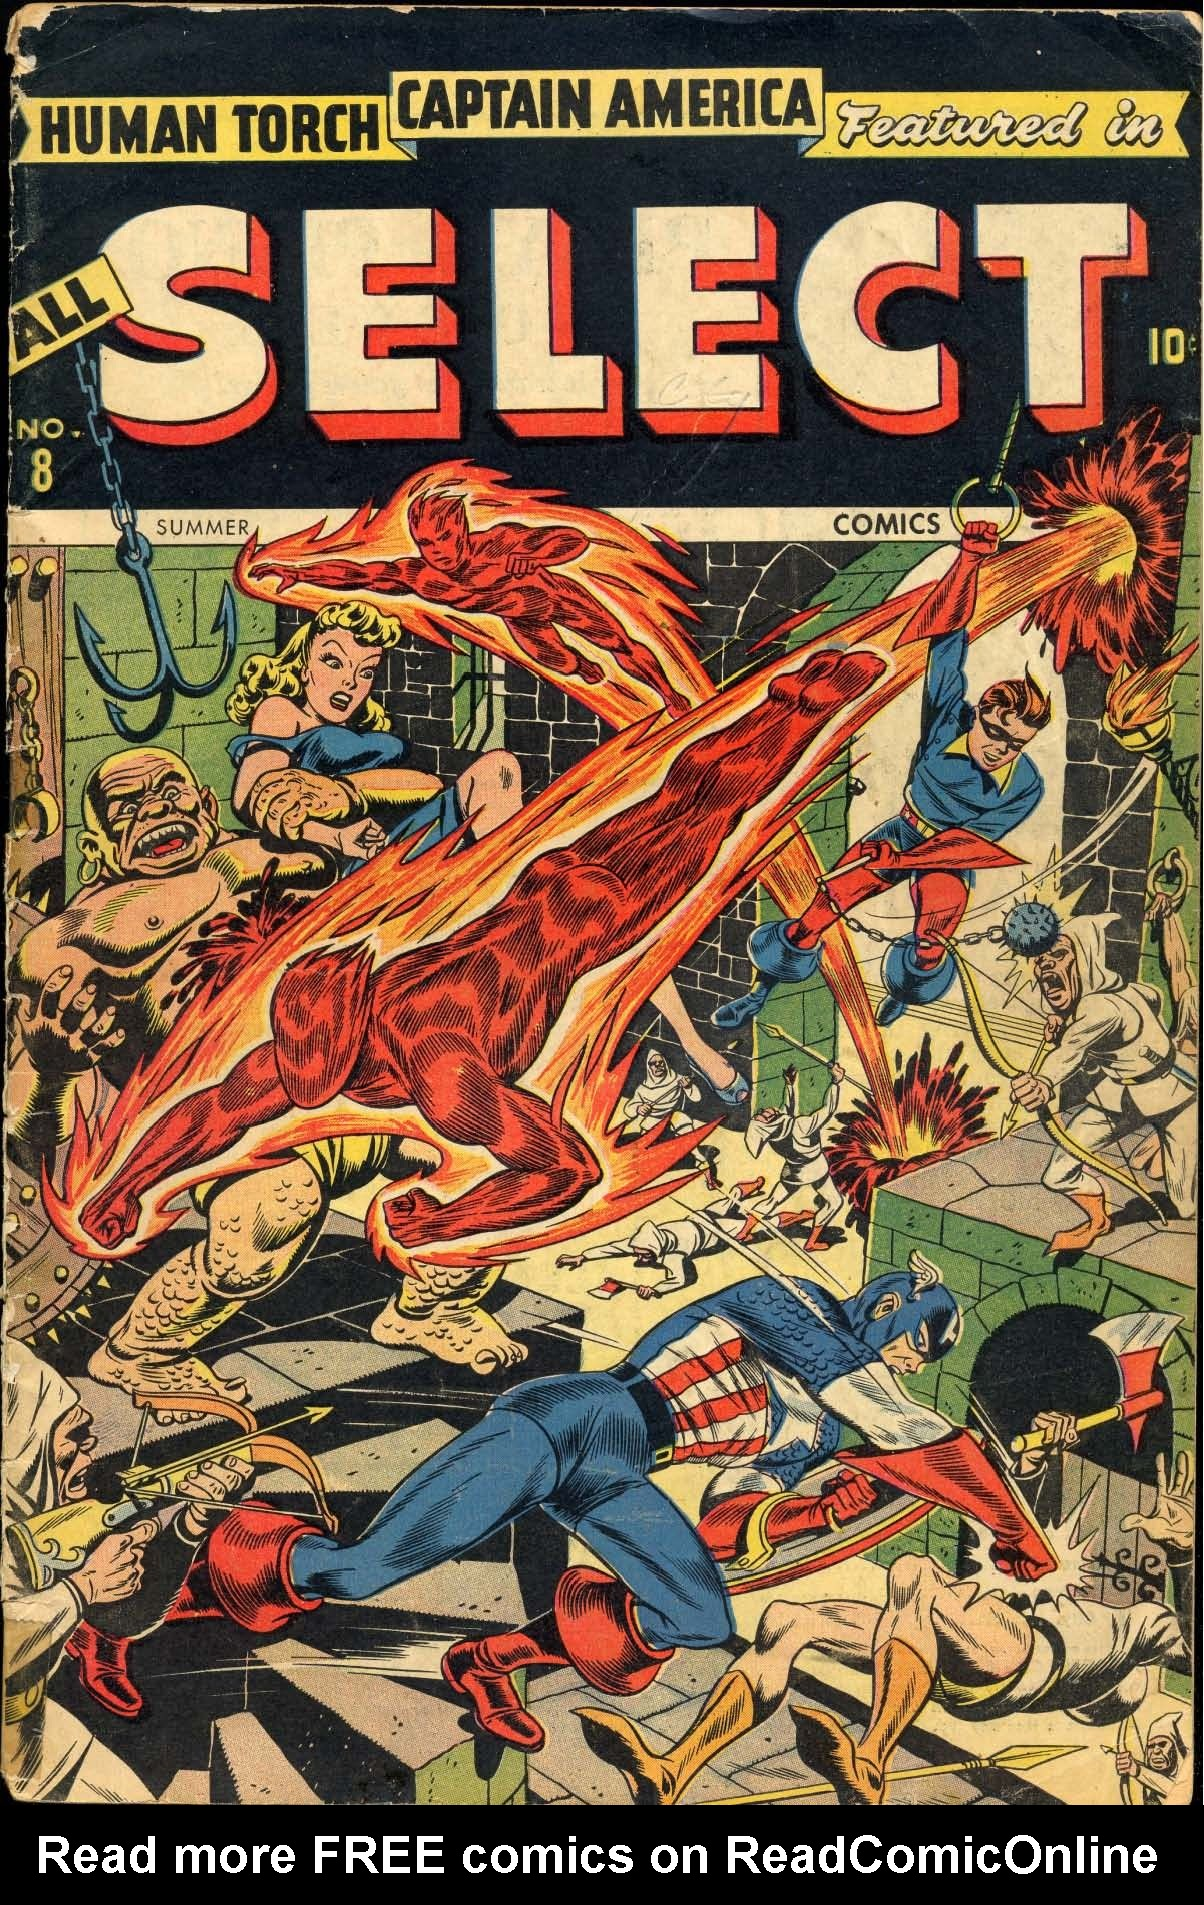 Read online All-Select Comics comic -  Issue #8 - 1